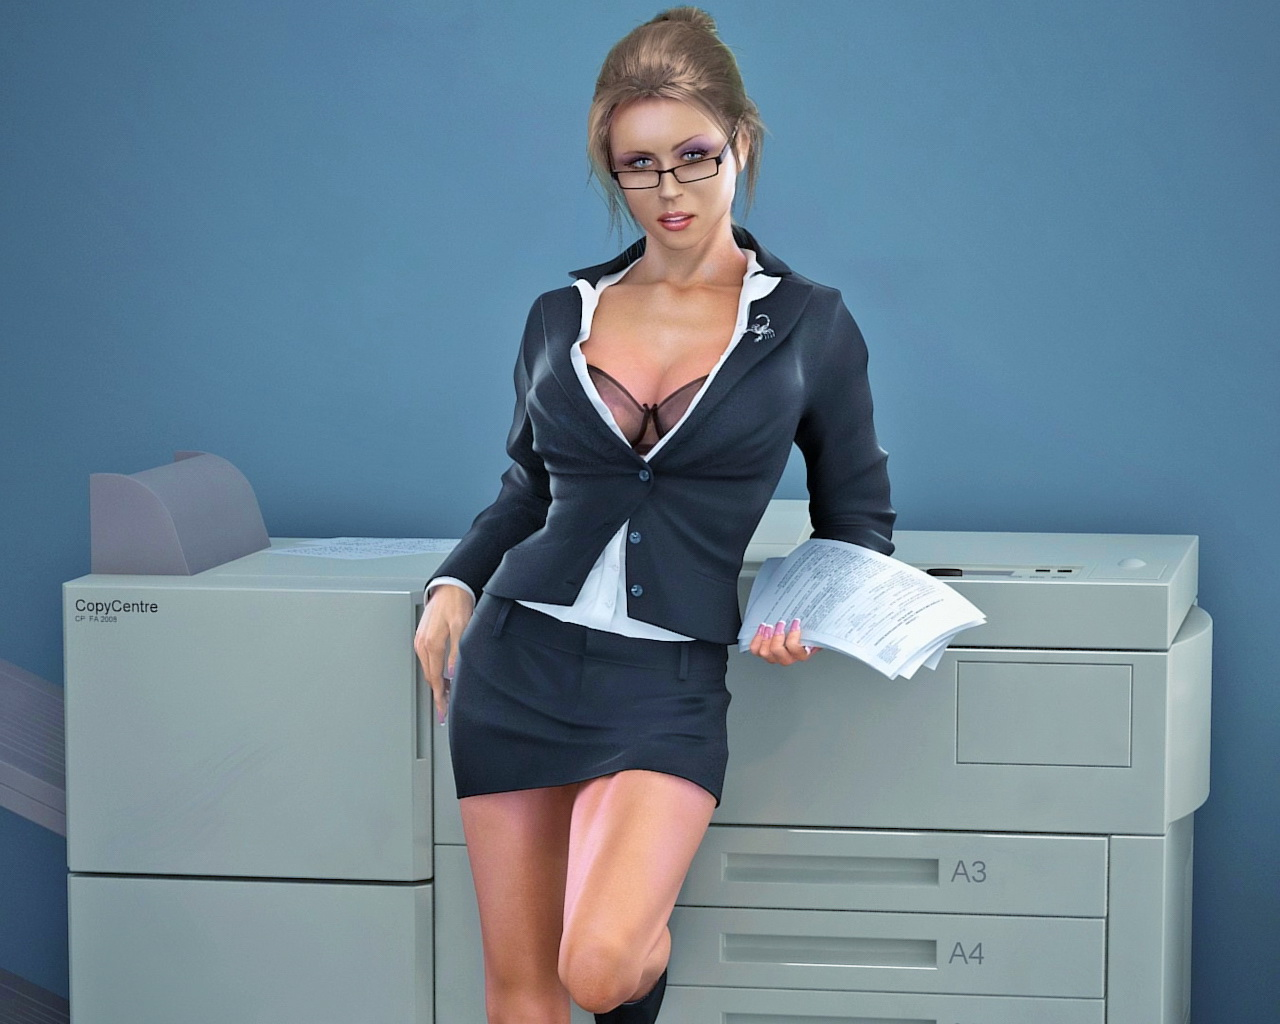 Hot blonde secretary deepthroats her boss's cock on a Monday morning  1455557